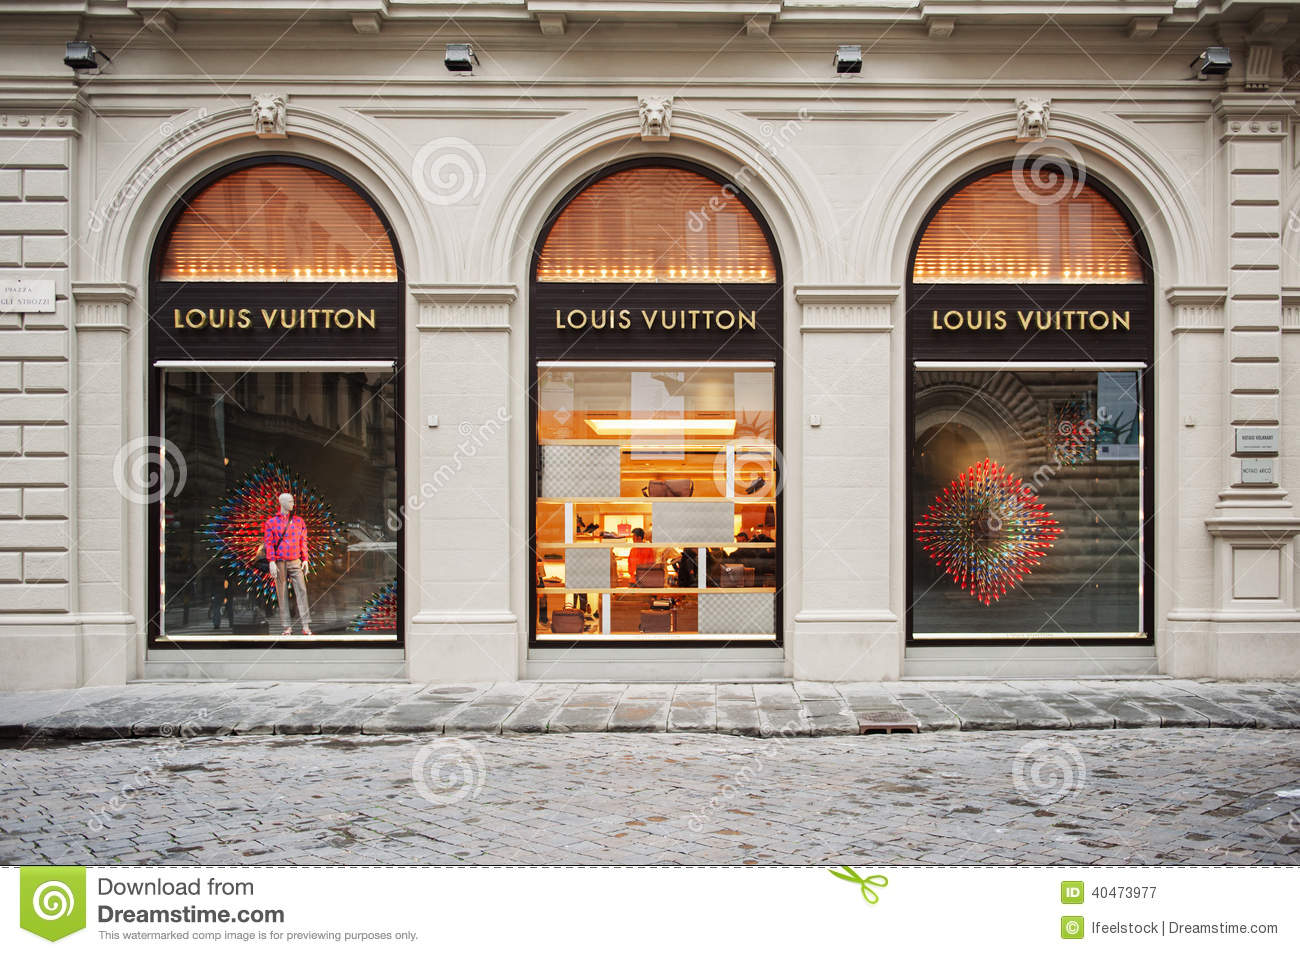 Louis vuitton store facade editorial photography image for Dream store firenze